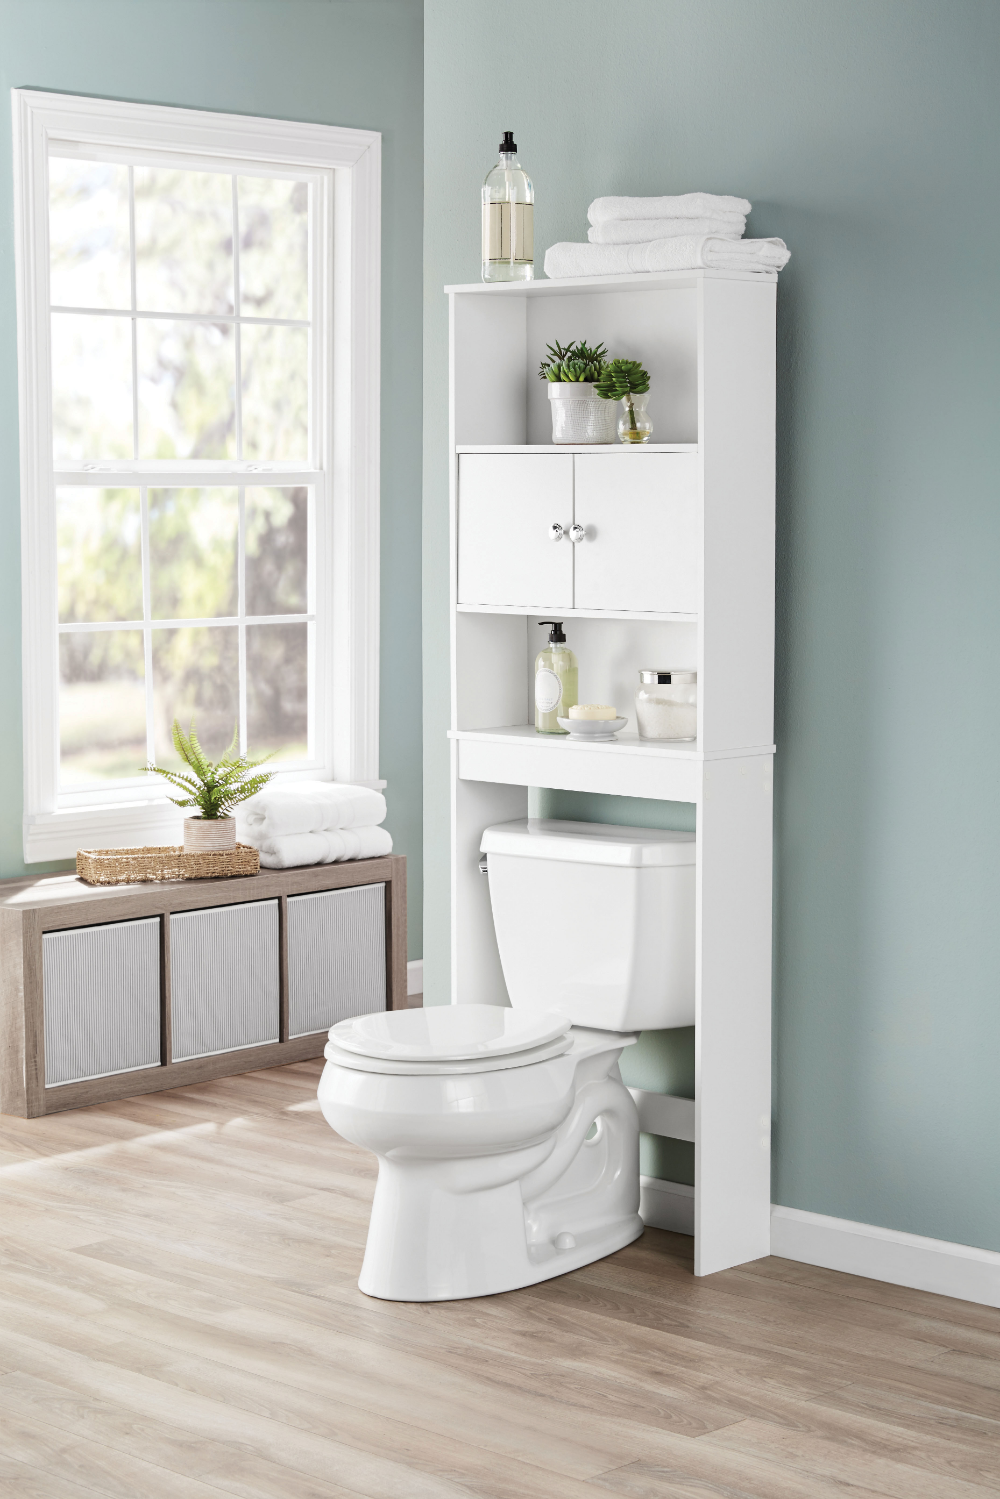 Mainstays Bathroom Storage Over The Toilet Space Saver With Three Fixed Shelves White Walmart Com In 2020 Bathroom Space Saver Bathroom Storage Cabinet Over The Toilet Cabinet